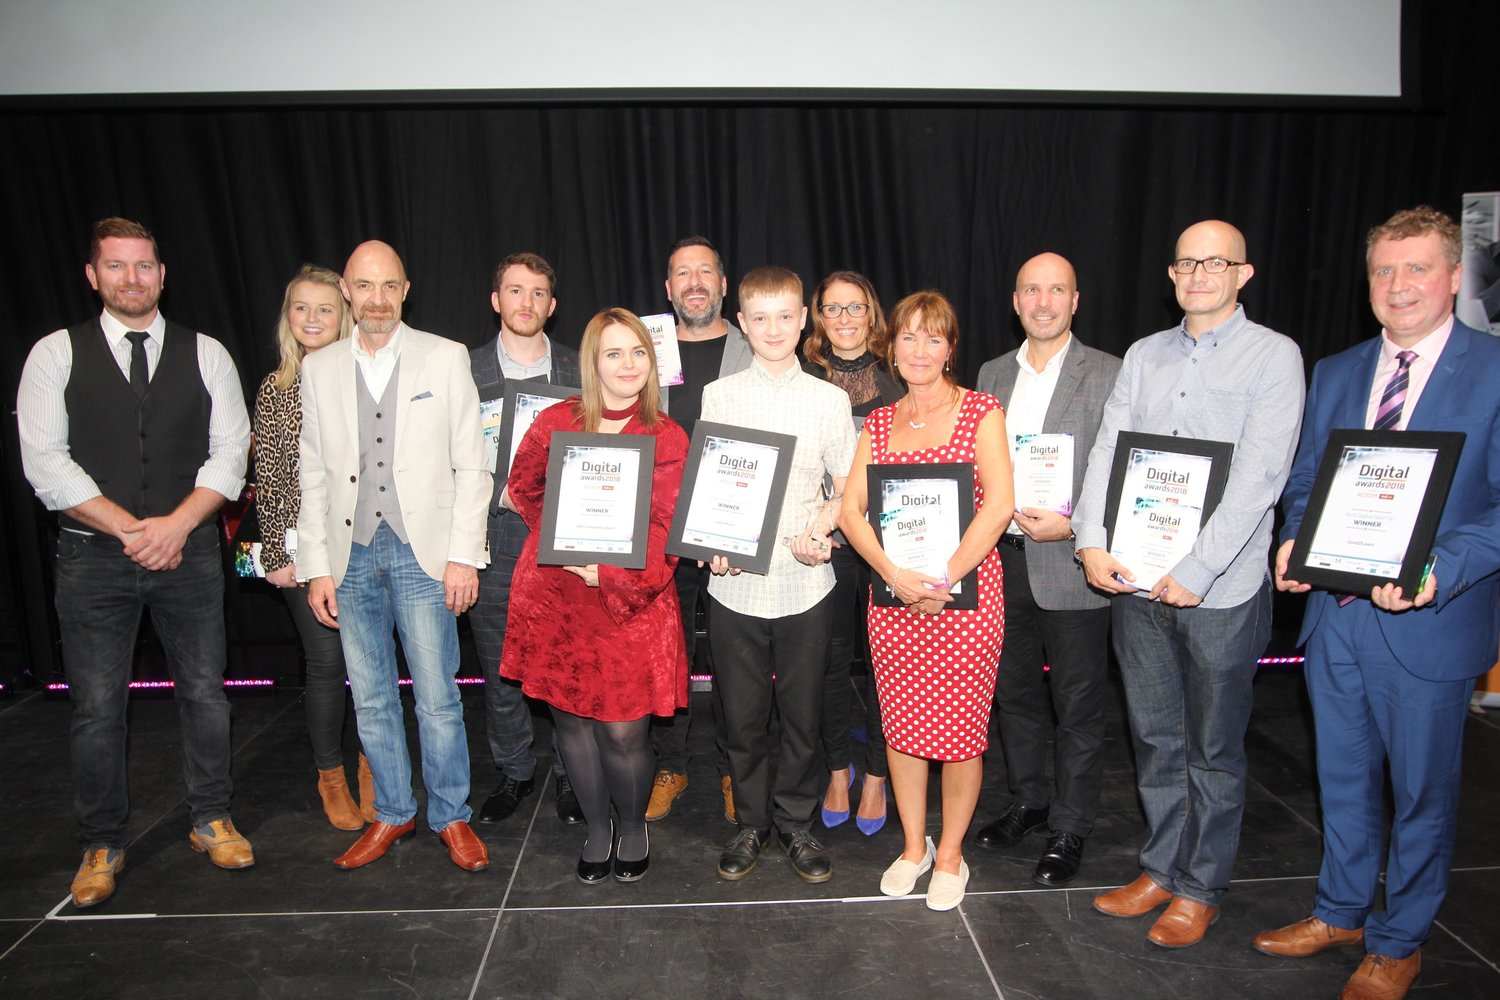 Last year's HEY Digital Awards winners.